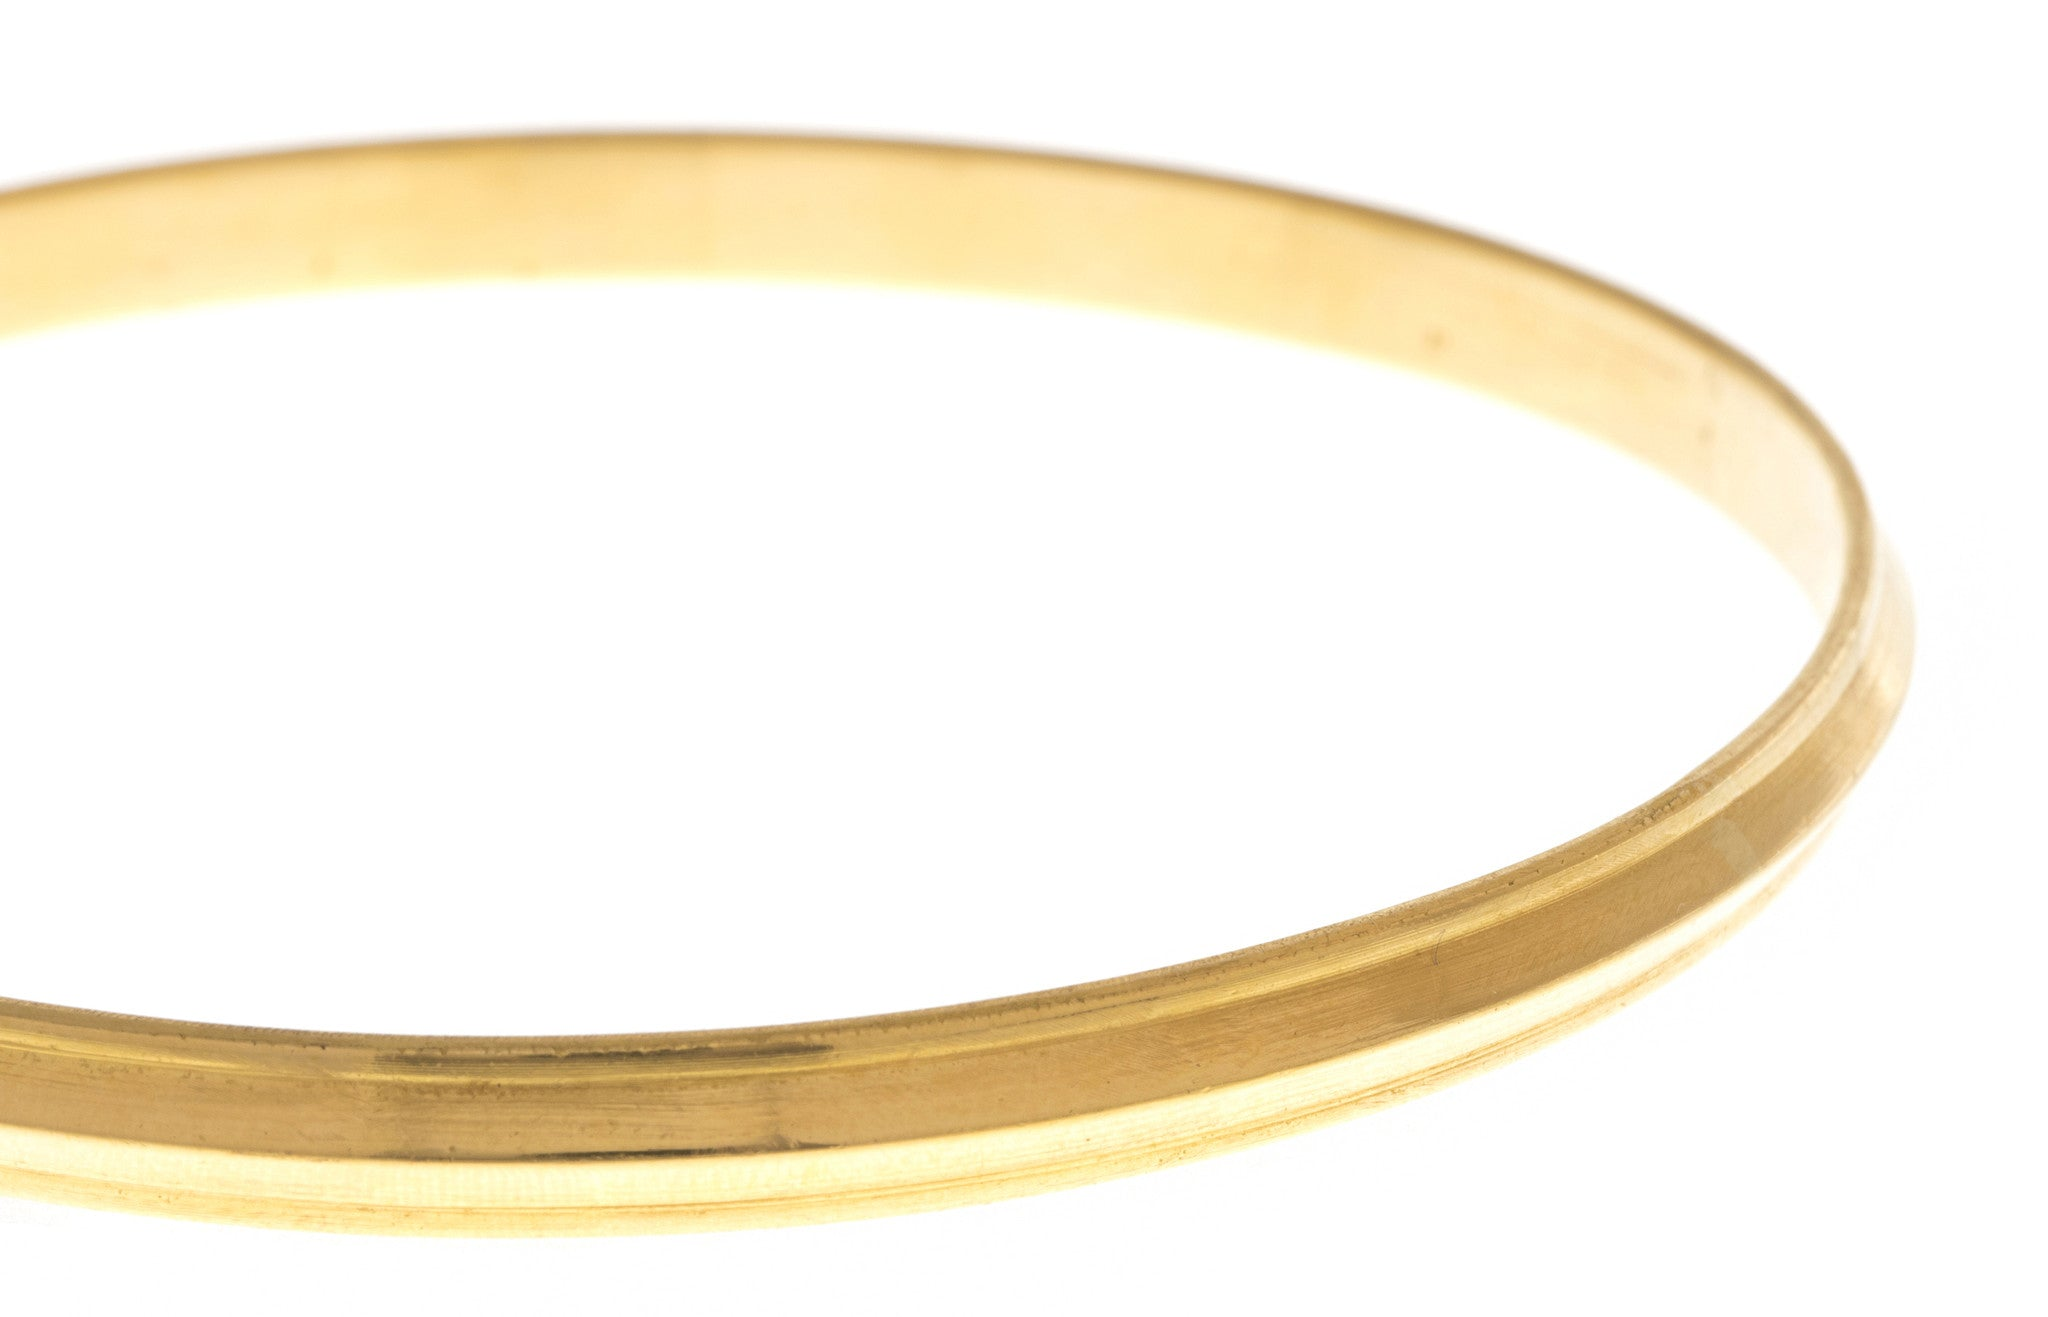 Hand Finished 22ct Yellow Gold 'Kada' Bangle, Minar Jewellers - 4